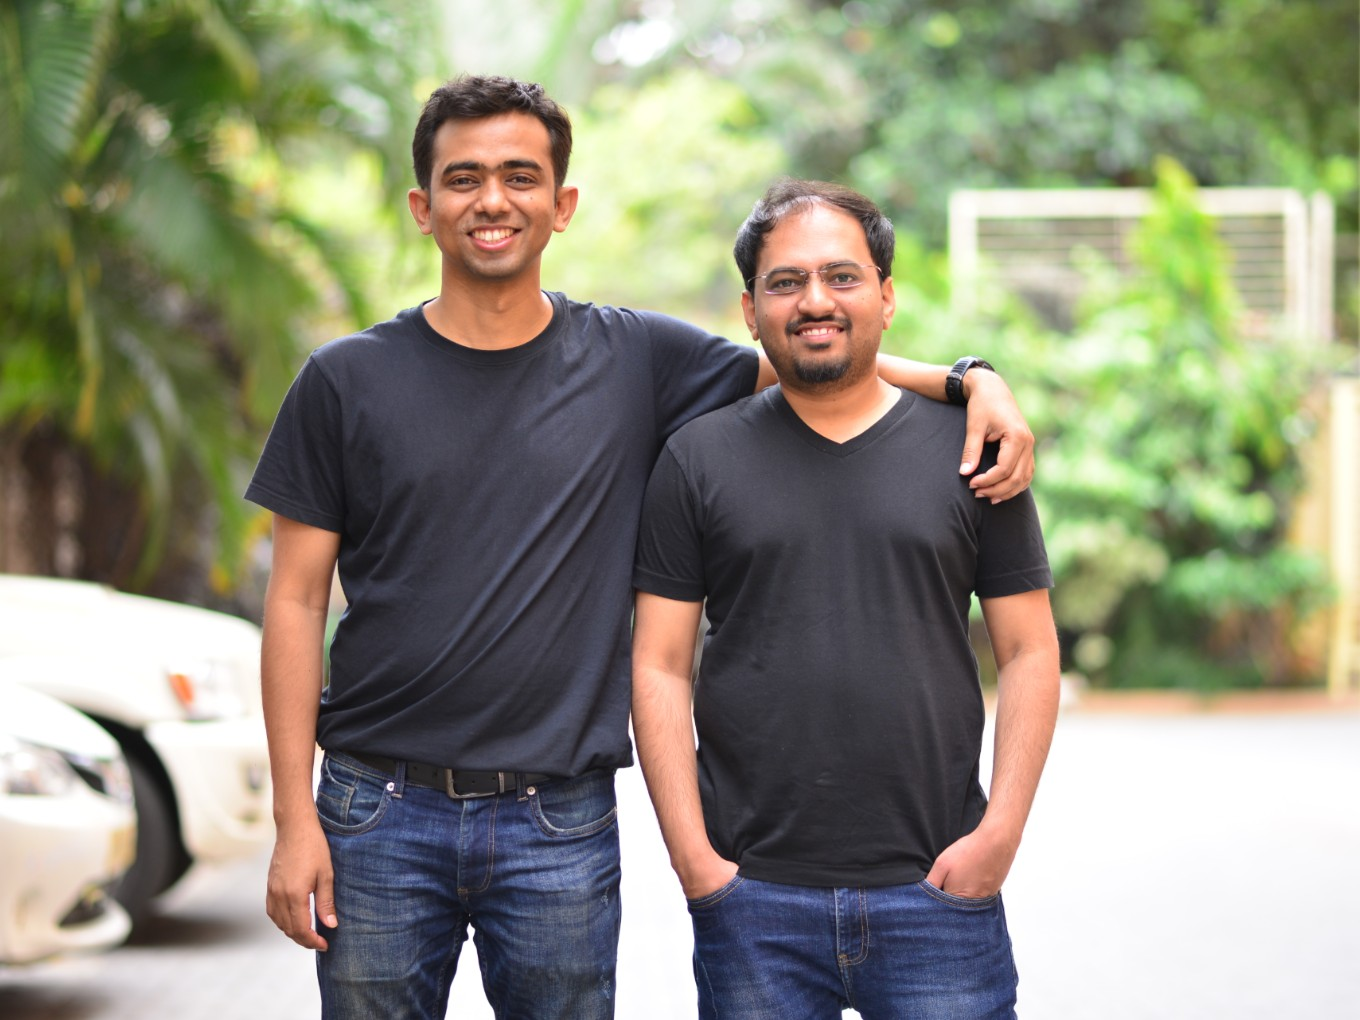 How Fintech SaaS Startup Recko Is Using Automation To Solve Payments Reconciliation